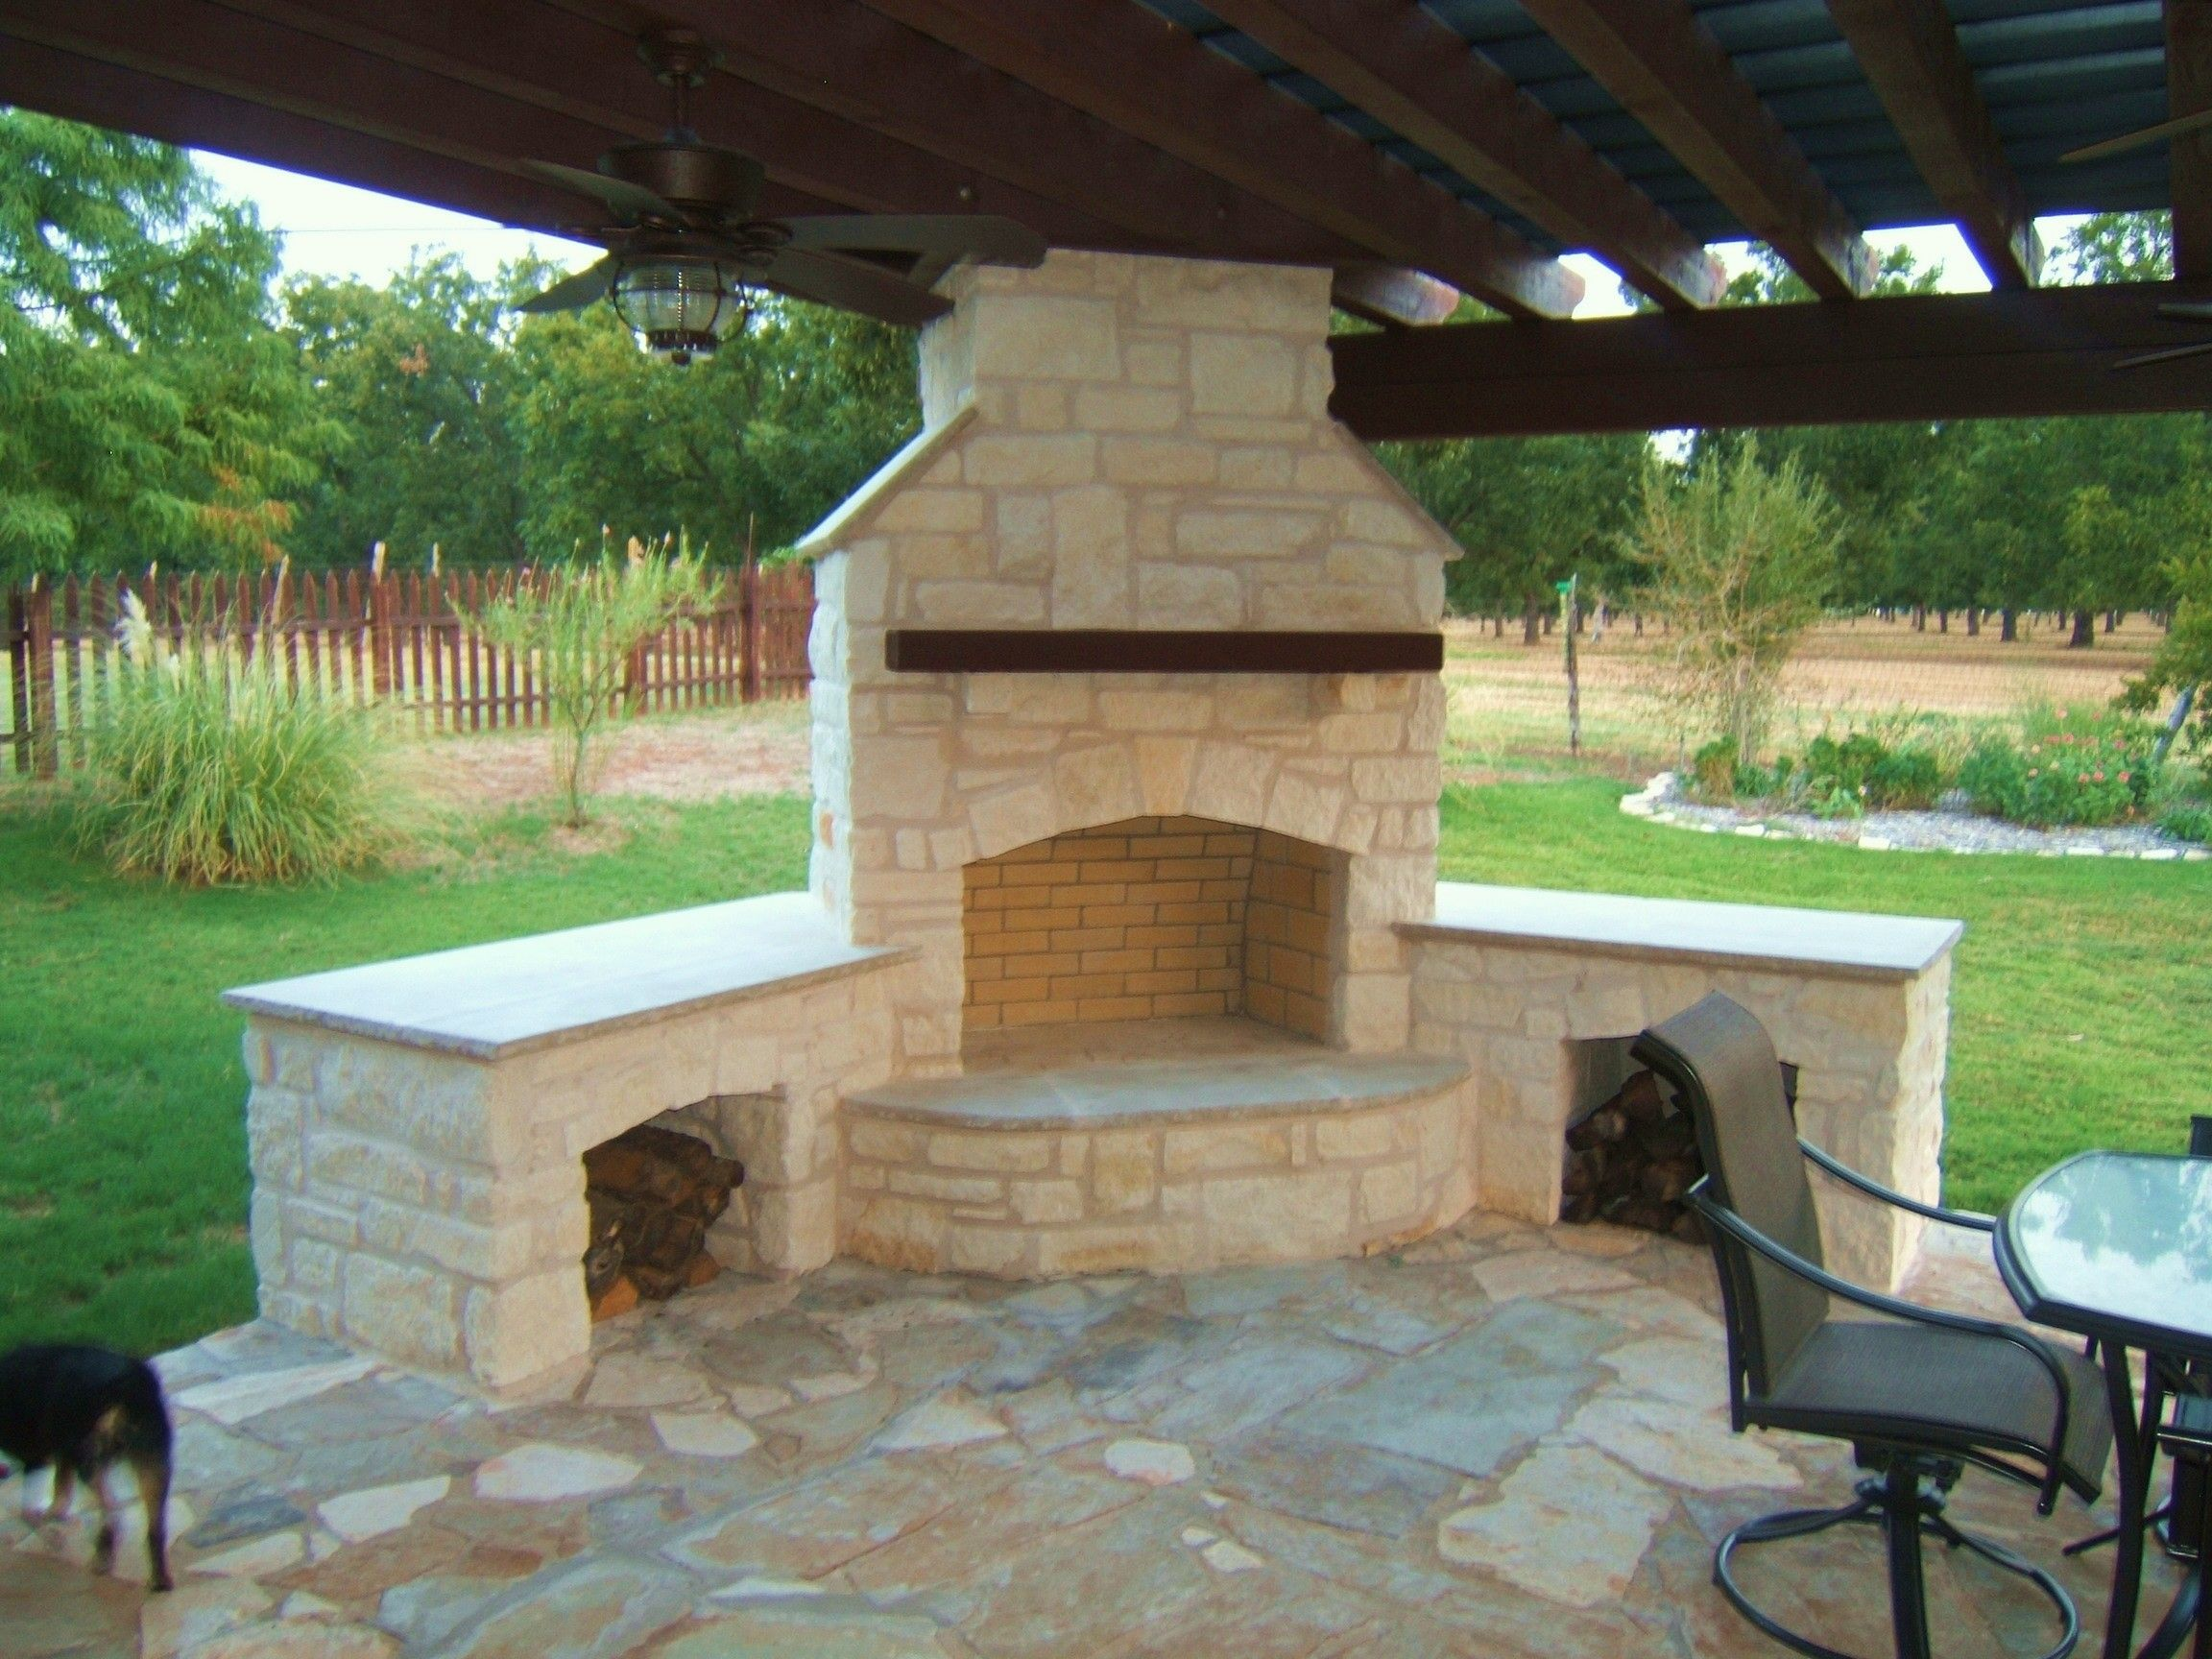 This is an outdoor fireplace, but it has some of the features I'd like in  the family room corner fireplace.